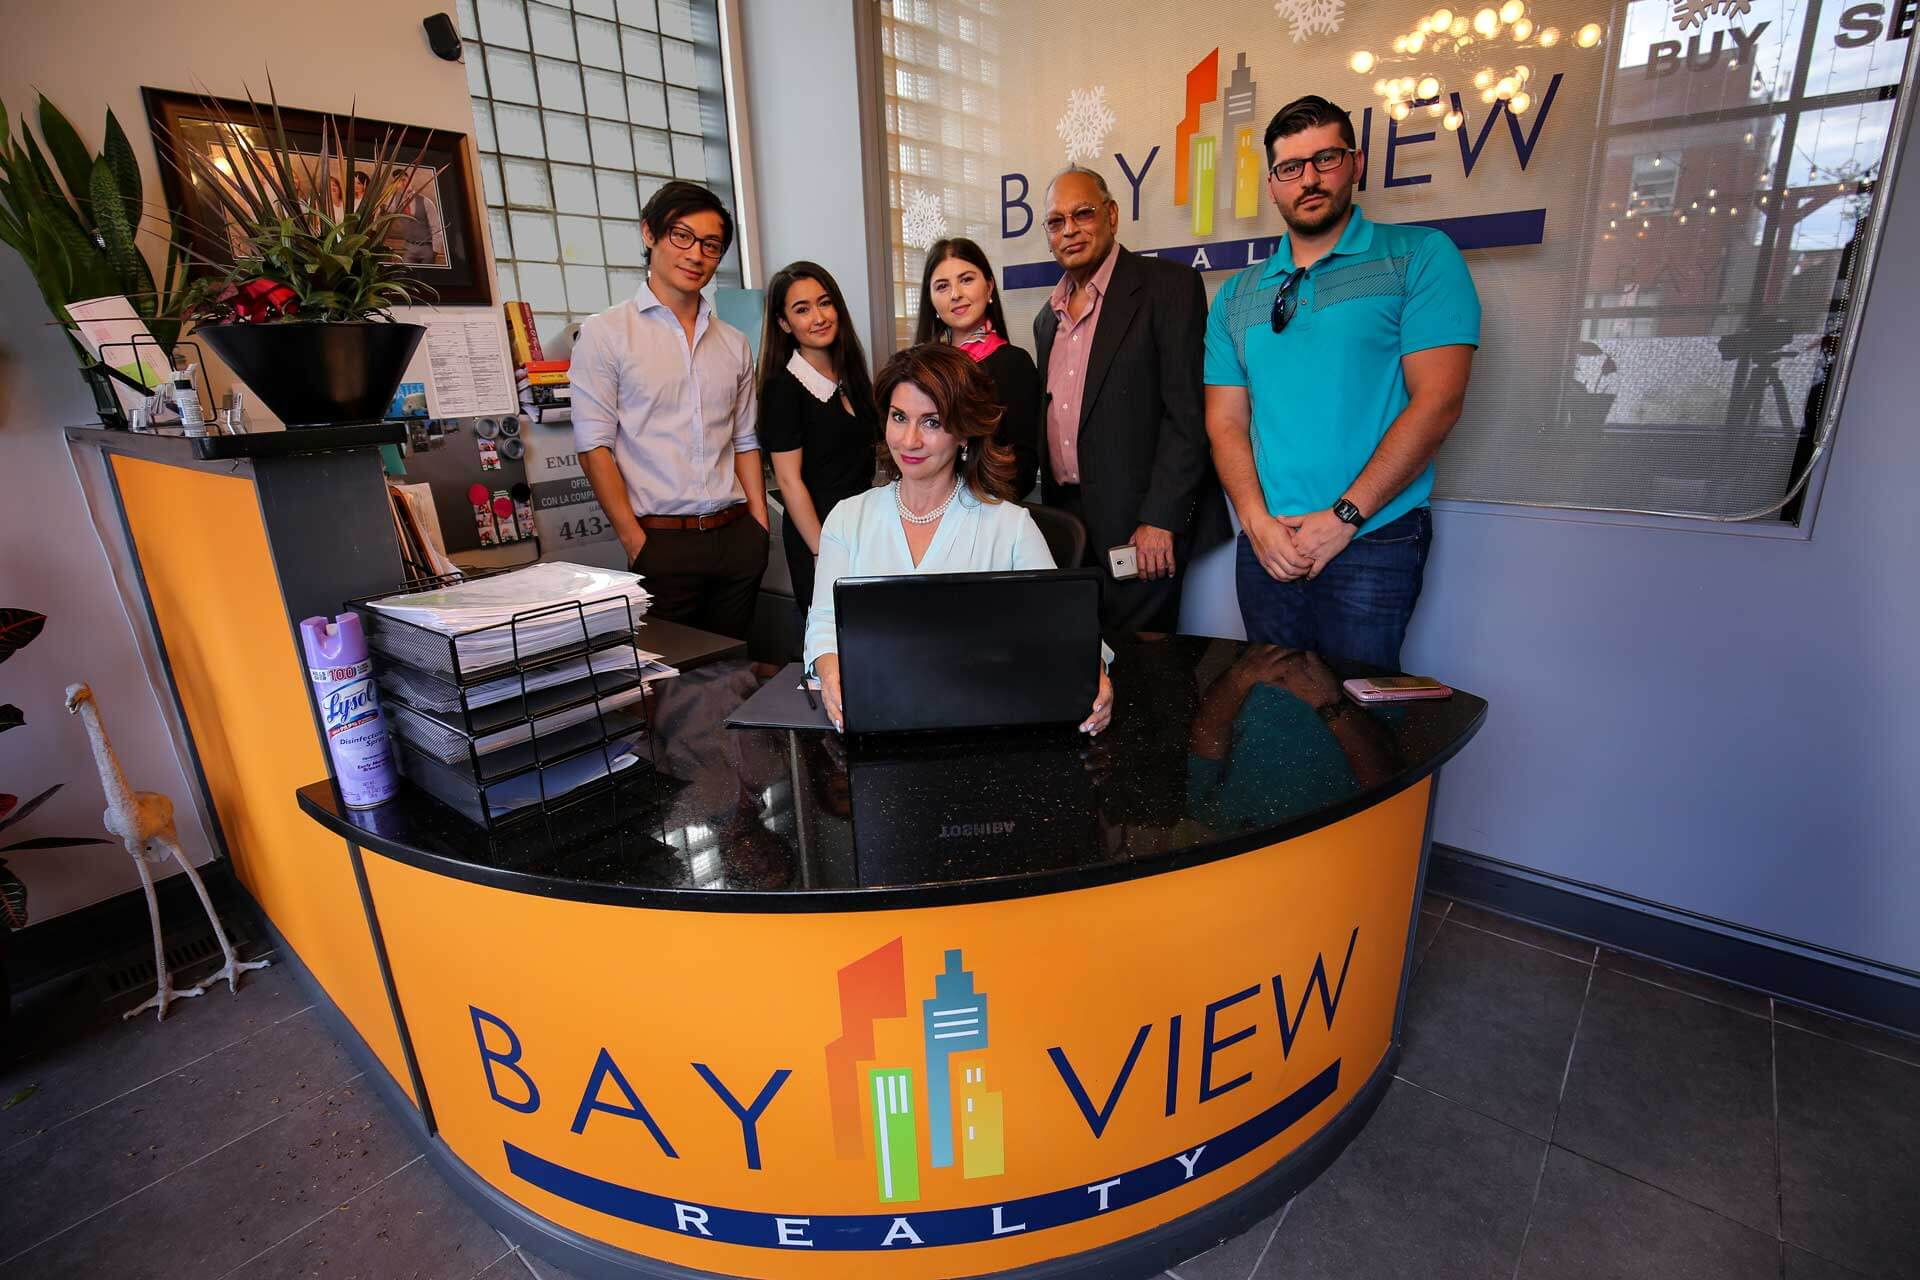 Bay View Realty - Maryland and Florida Real Estate Team